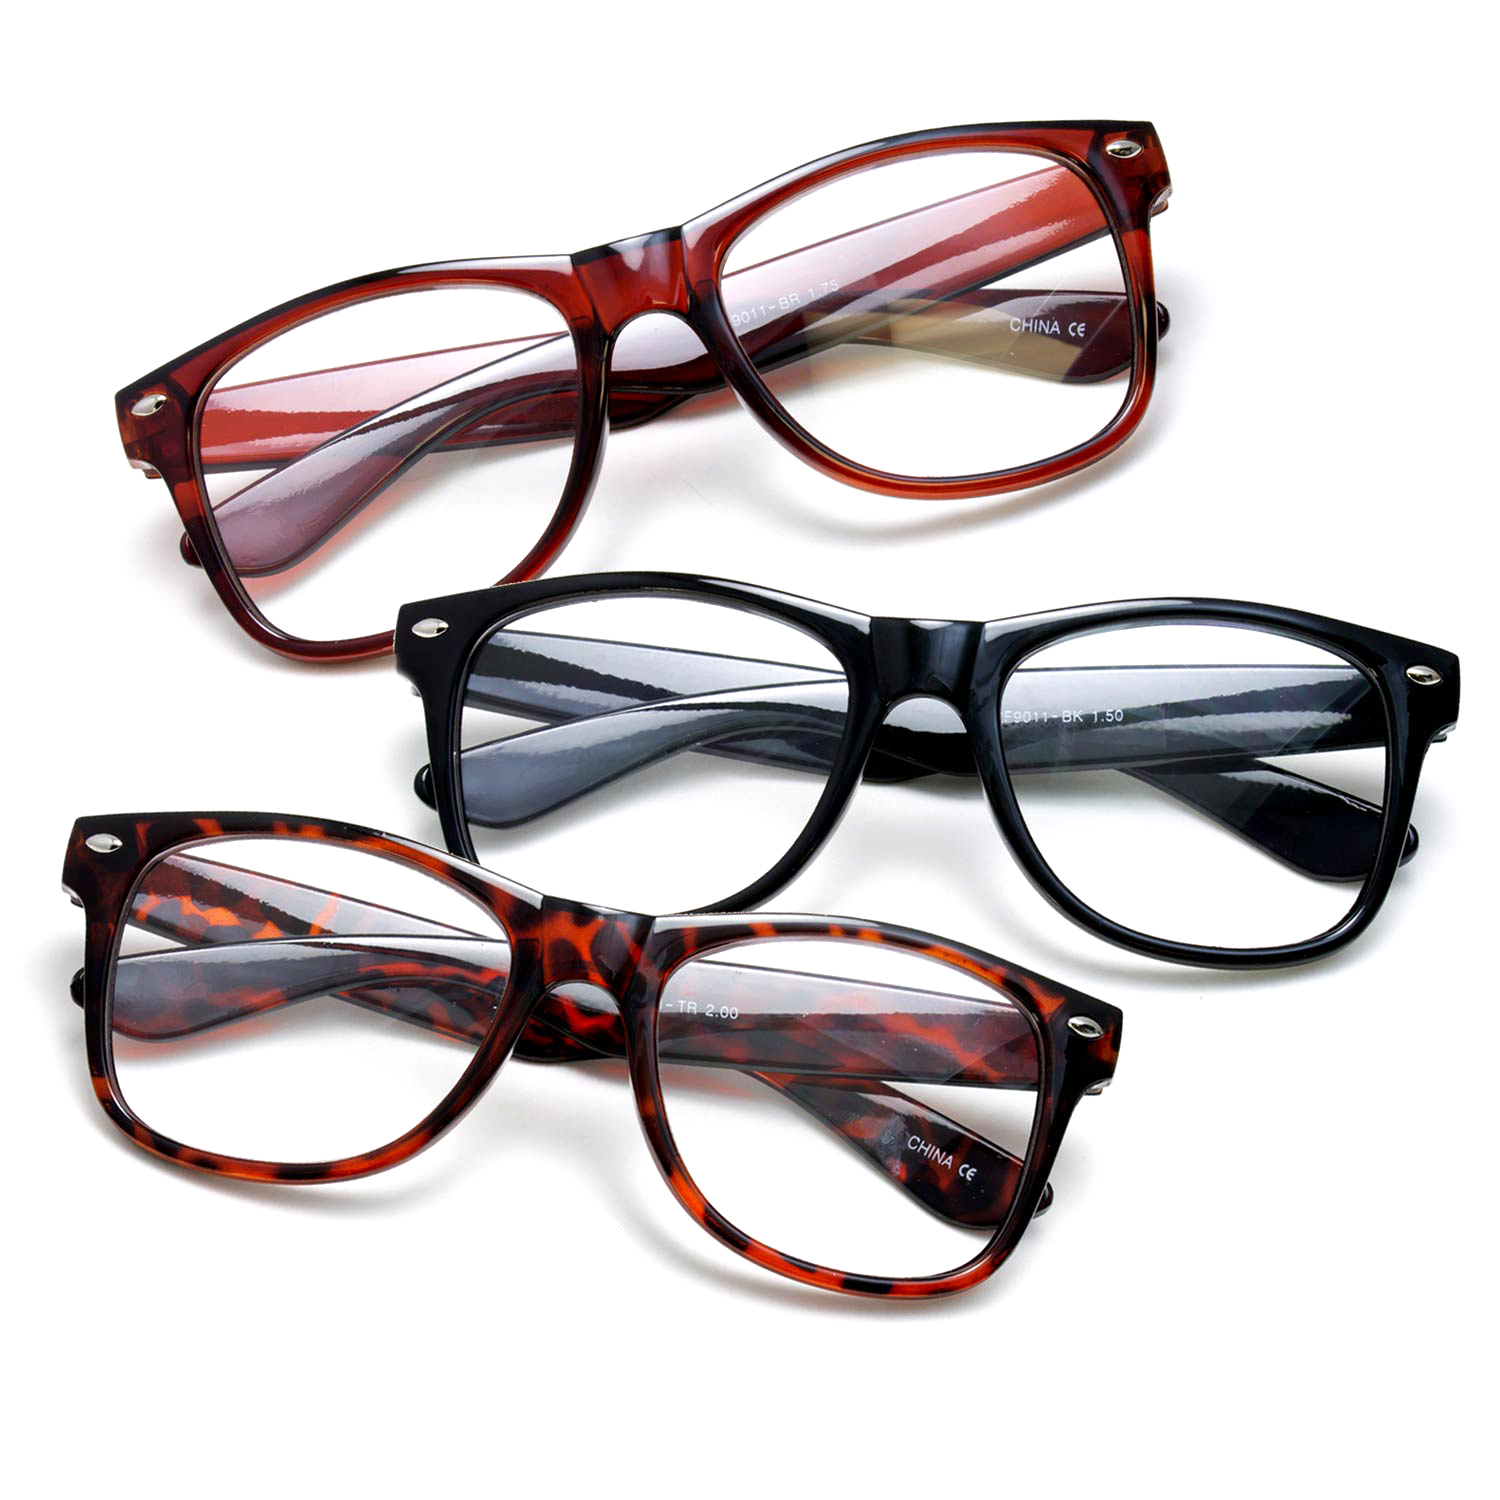 3 Pack Vintage Style Comfortable Stylish Simple Reading Glasses, Black, Brown, Tortoise +3.50